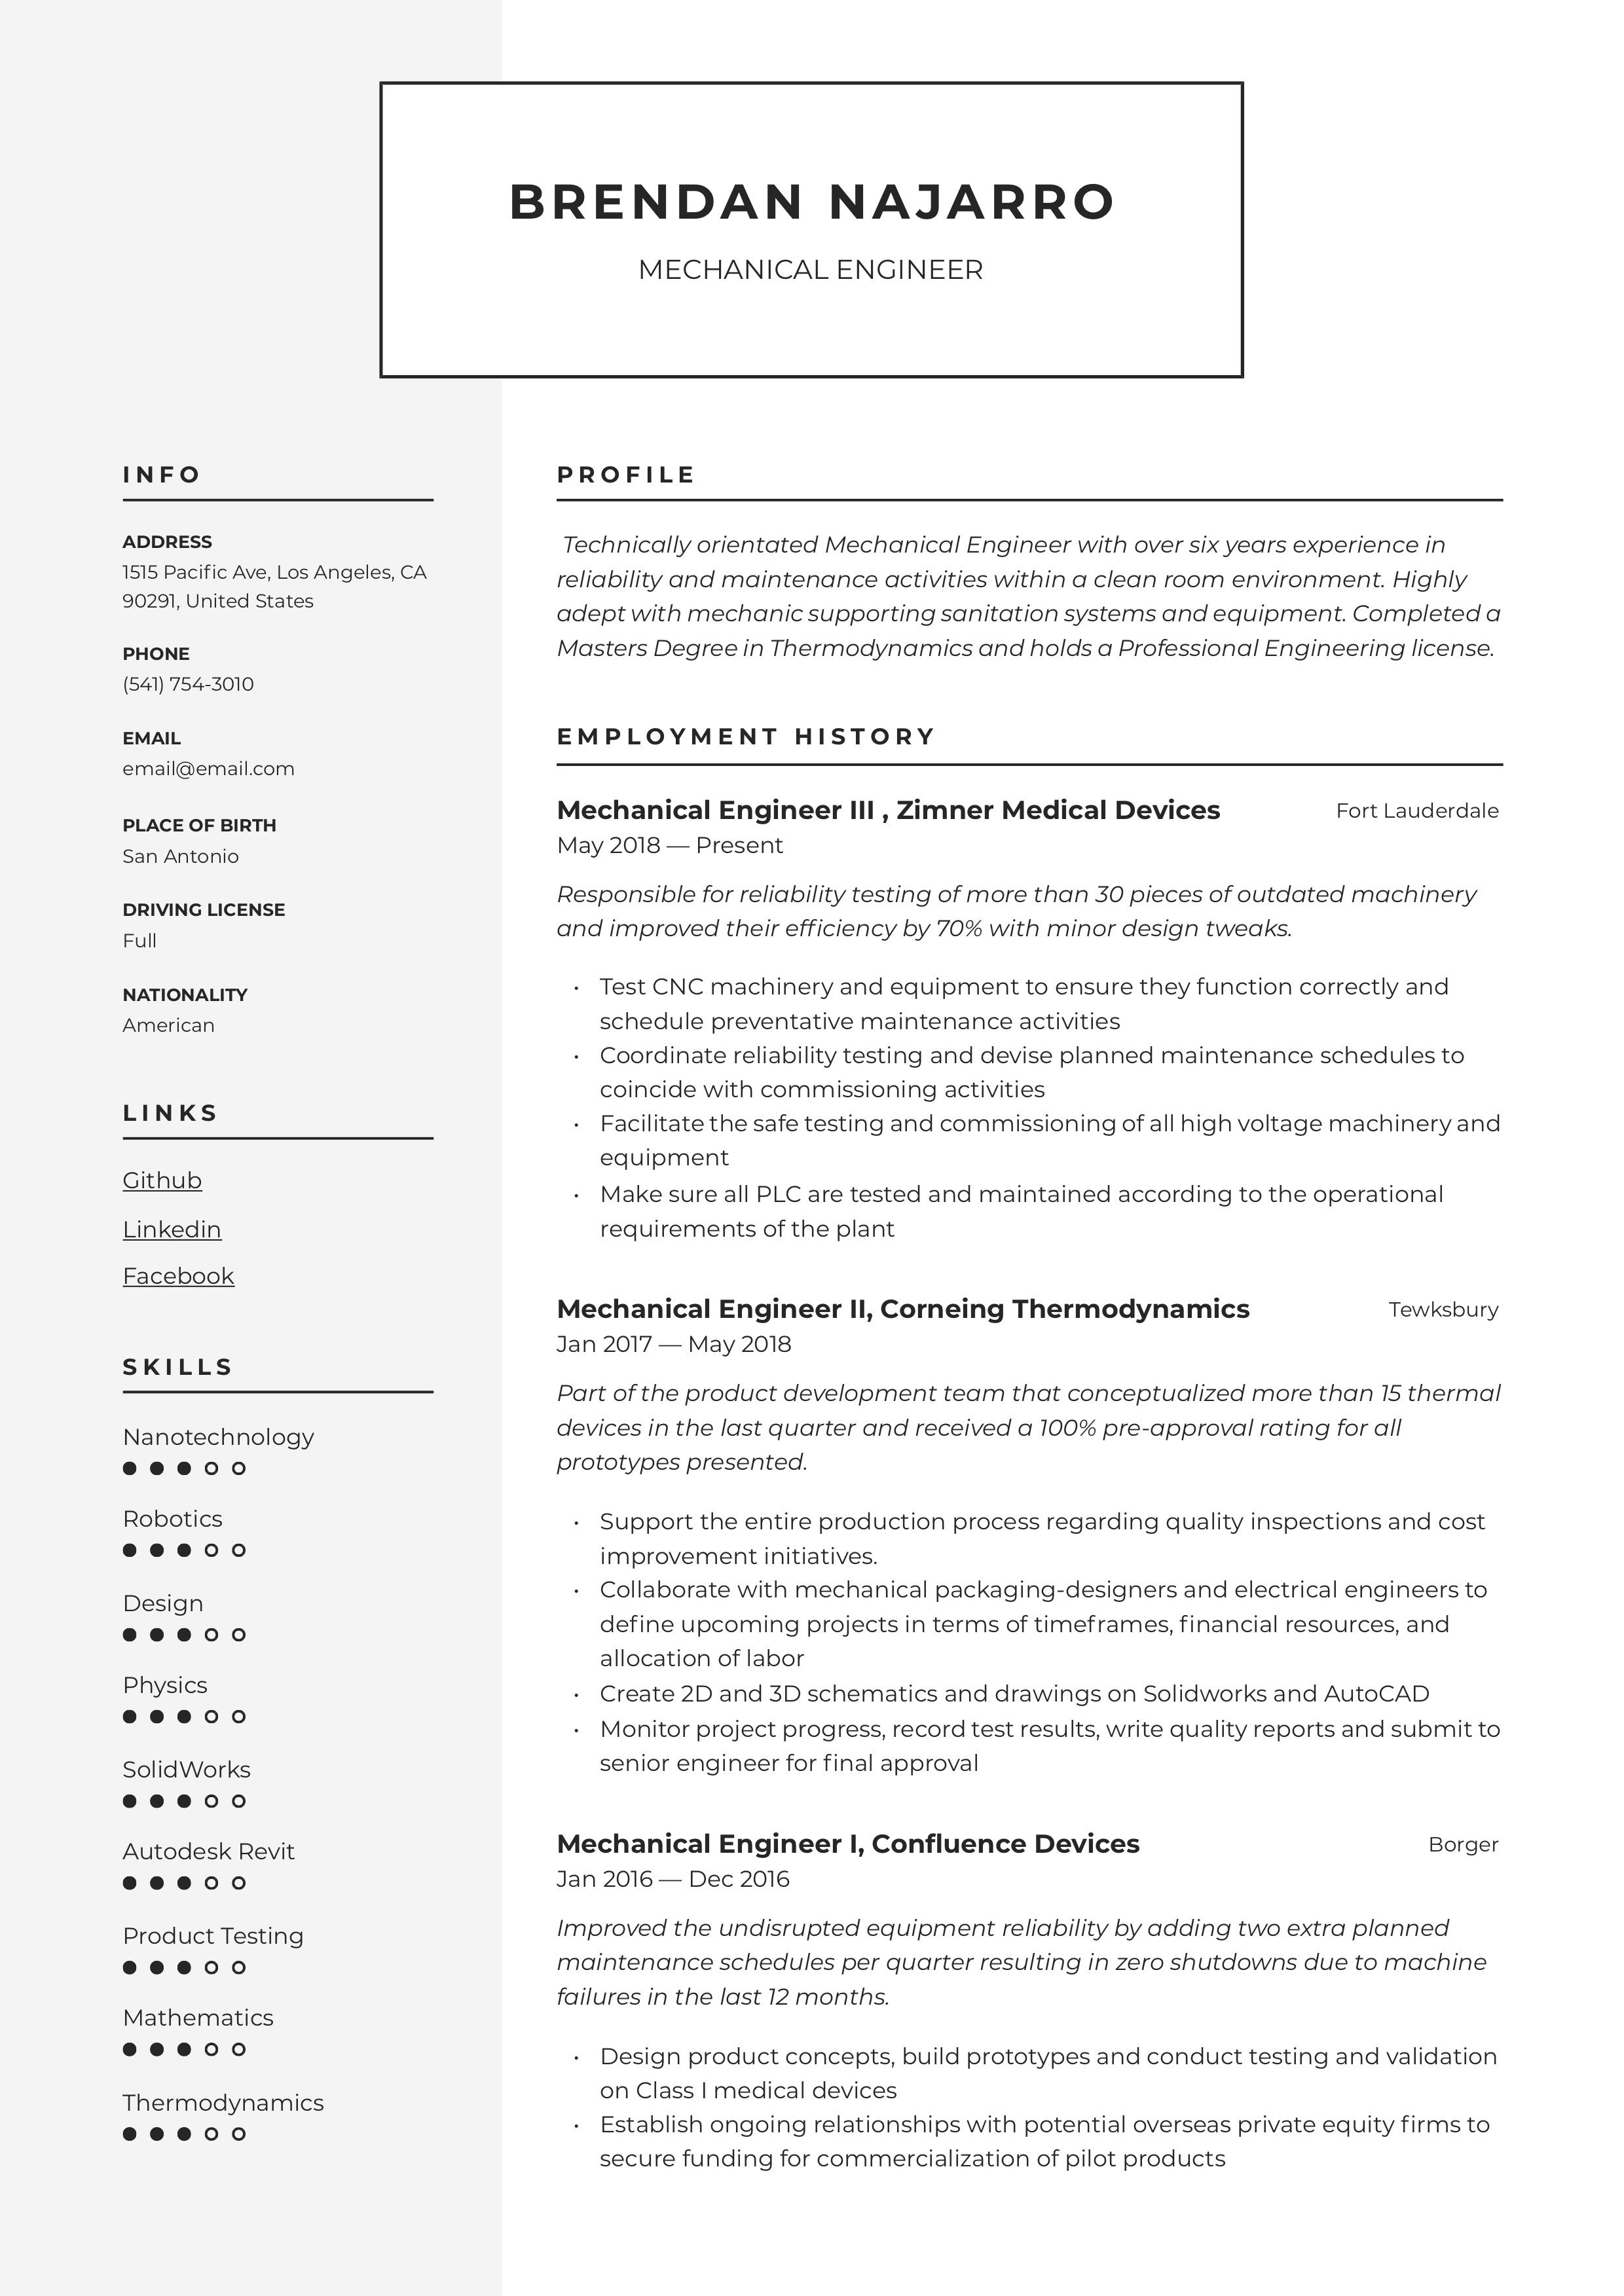 Professional Mechanical Engineer Resume, template, design